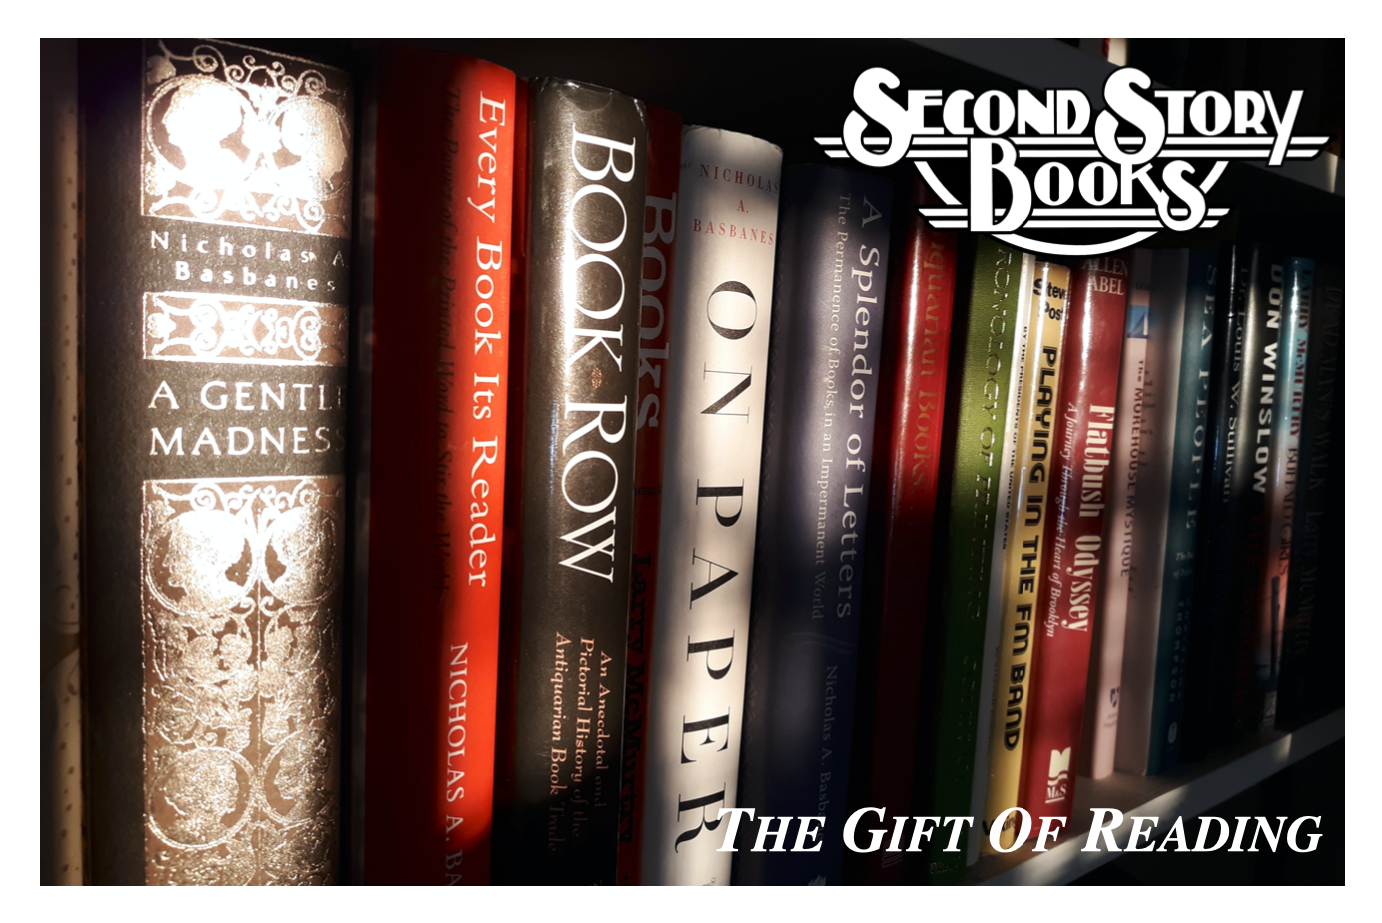 SECOND STORY BOOKS : $50 GIFT CERTIFICATE. $50 GIFT CERTIFICATE.